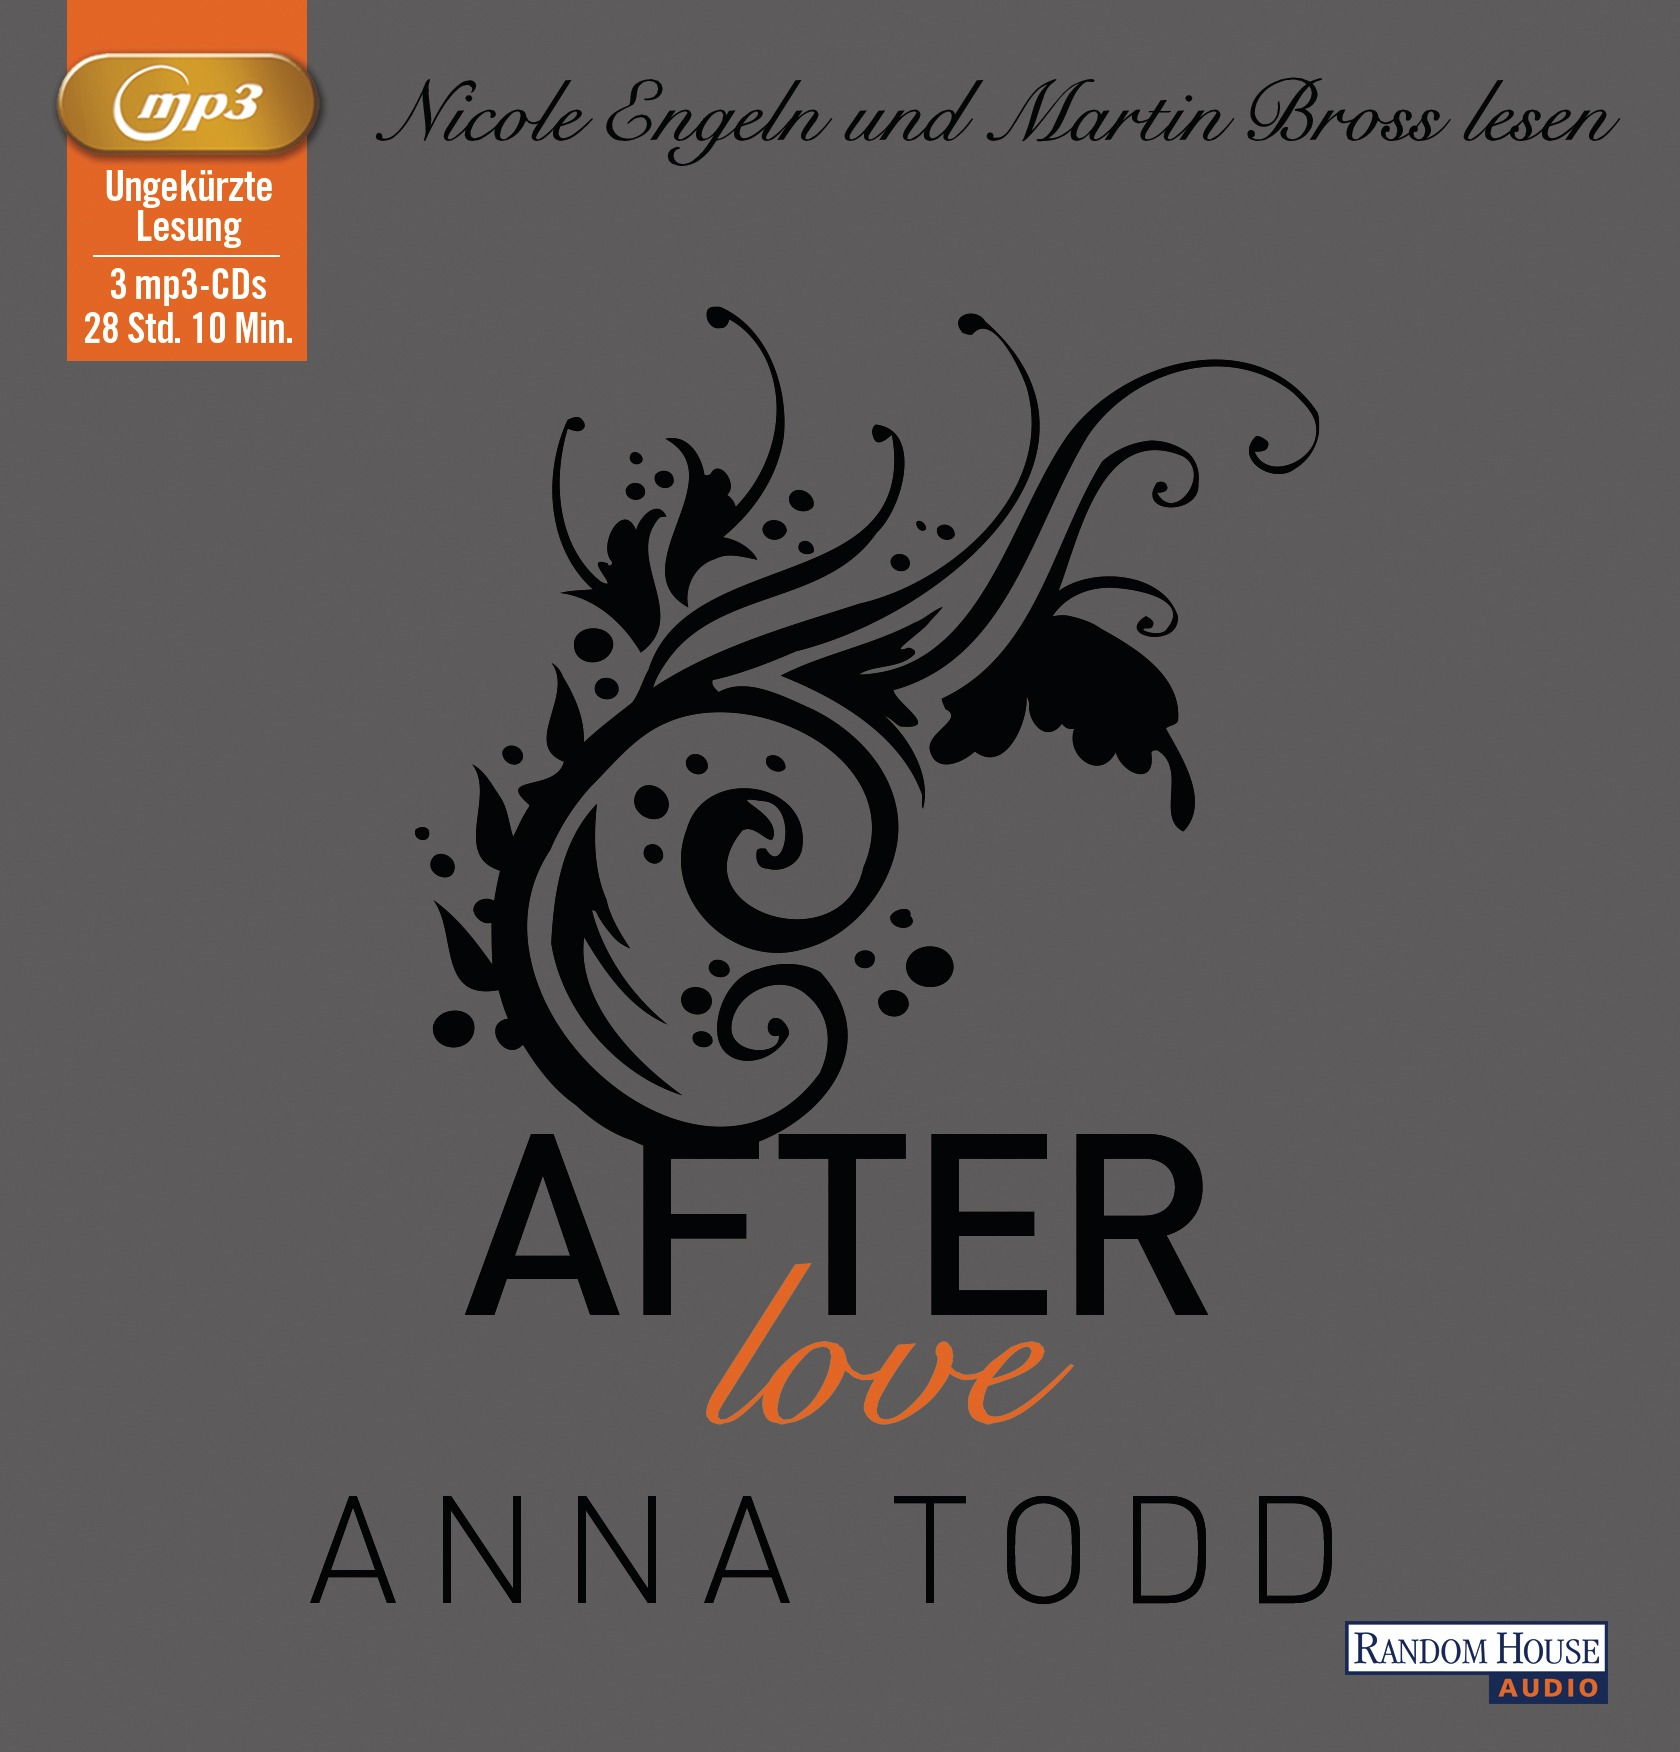 http://www.randomhouse.de/content/edition/covervoila_hires/Todd_AAfter_love_3_3MP3_160139.jpg